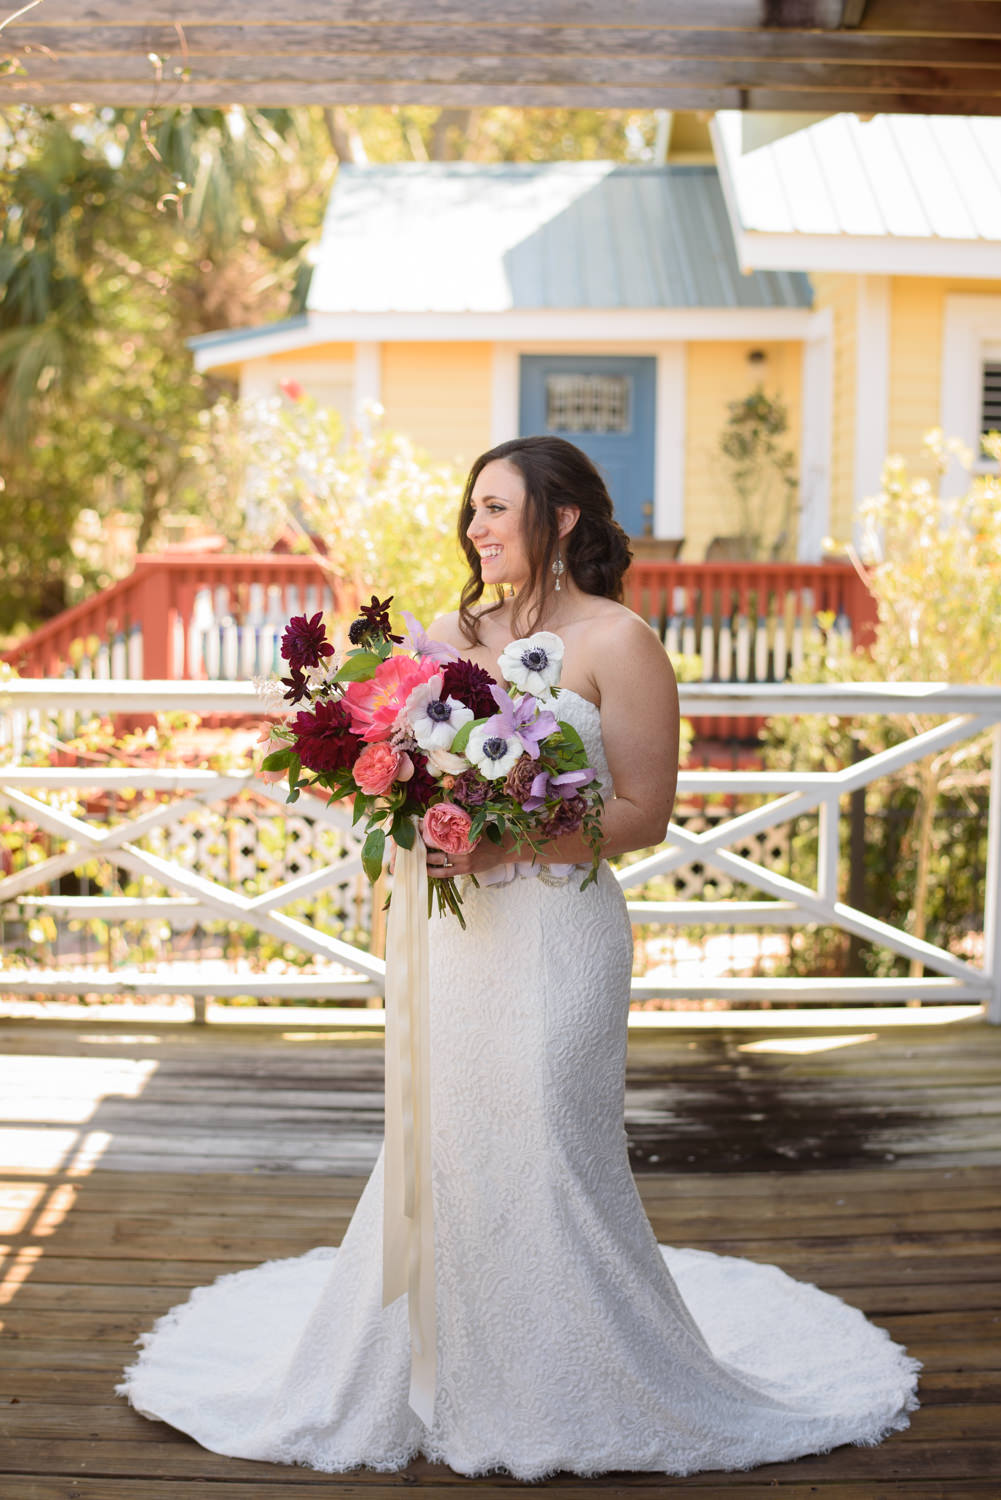 A Simply Beautiful Outdoor Wedding At The Oldest House In St. Augustine,  Florida